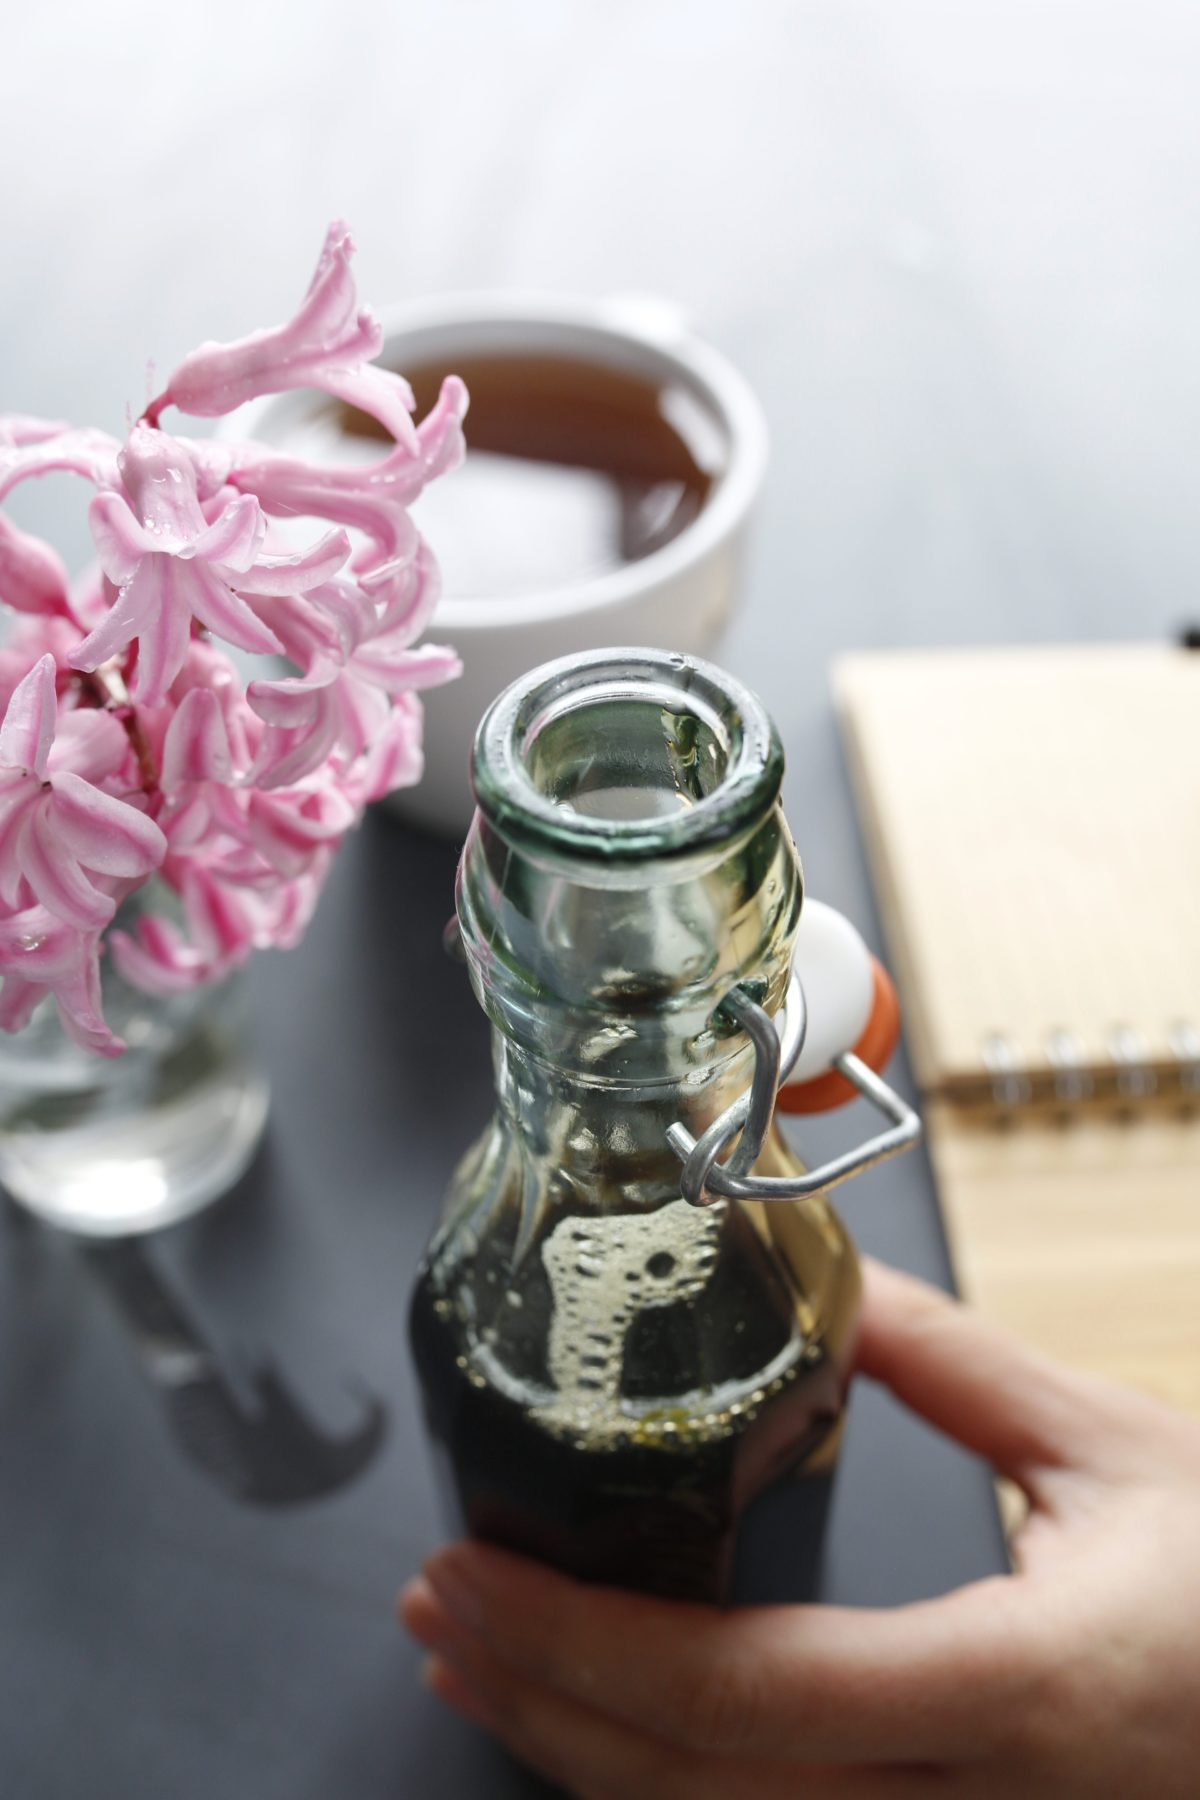 How To Make Vegan Herbal Syrup | Herbal Academy | If you're a vegan and you're interested in making vegan herbal syrups, you'll find several alternatives to honey detailed in this article.